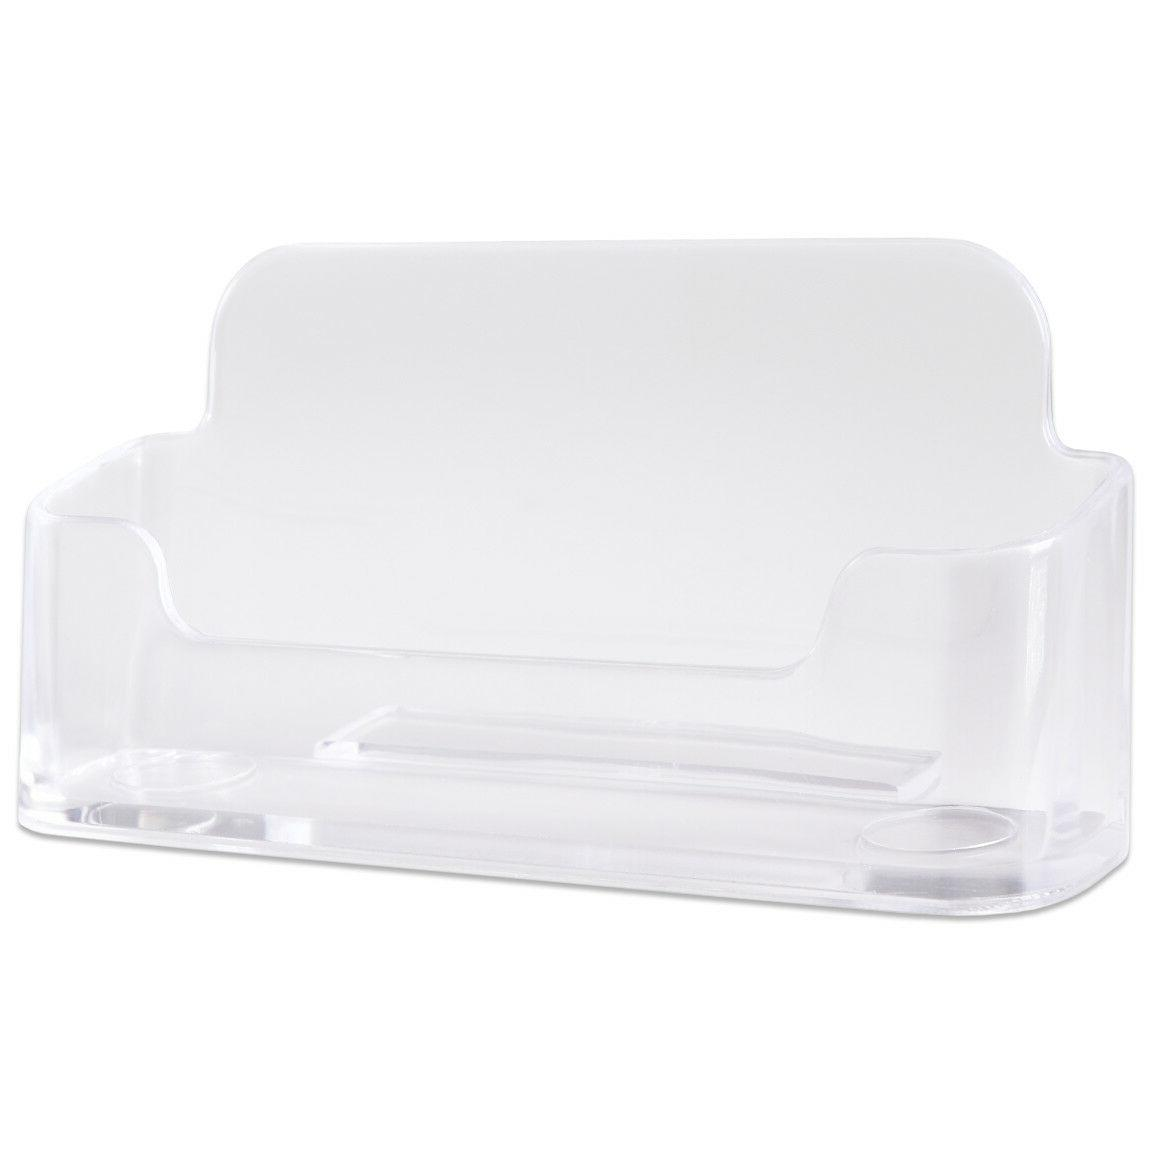 12pcs Clear Card Display Stand